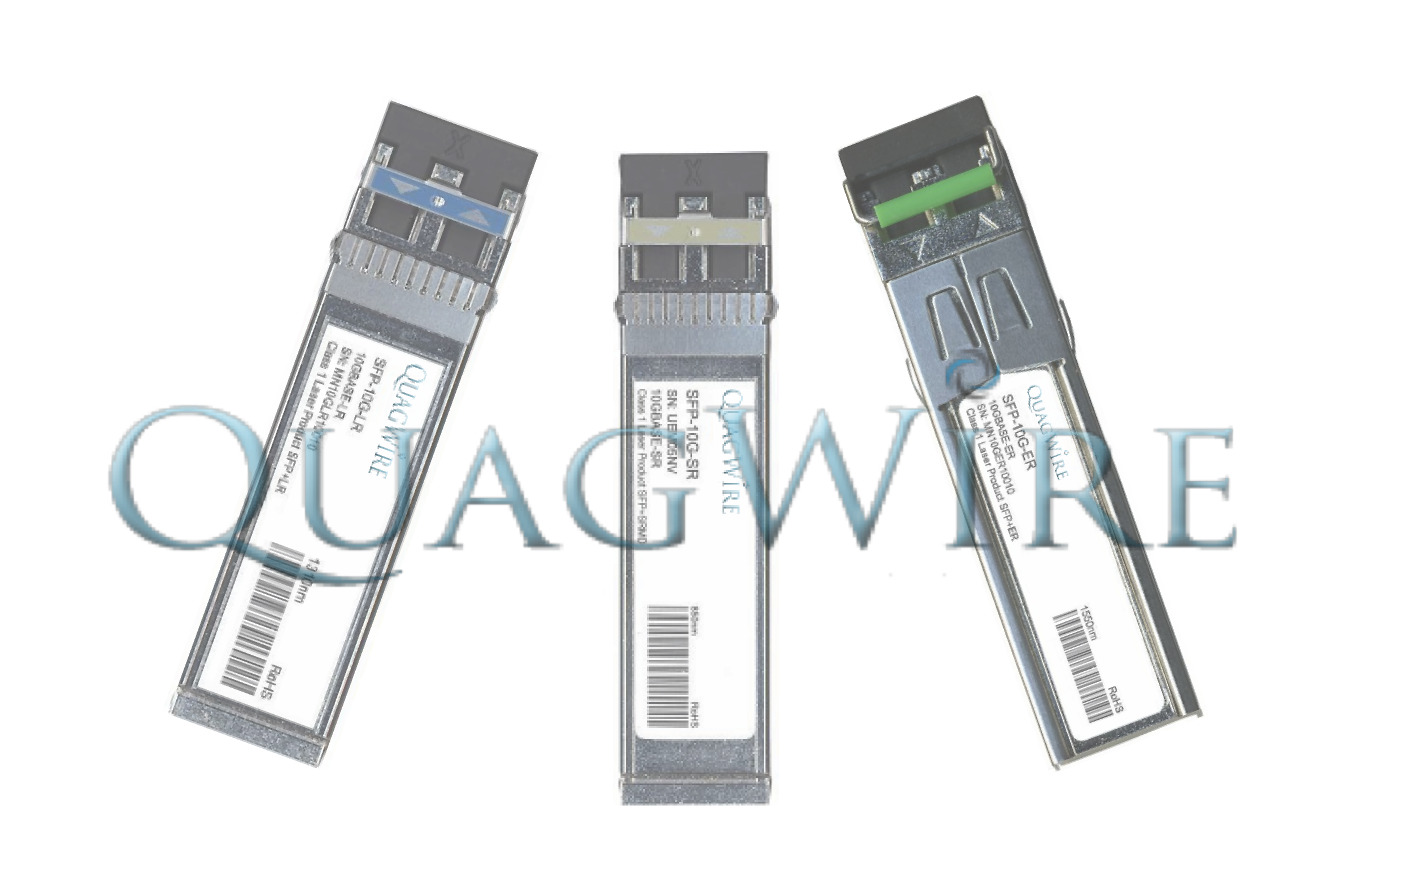 DWDM-SFP10G-6141 – Cisco Compatible DWDM SFP+ Transceiver